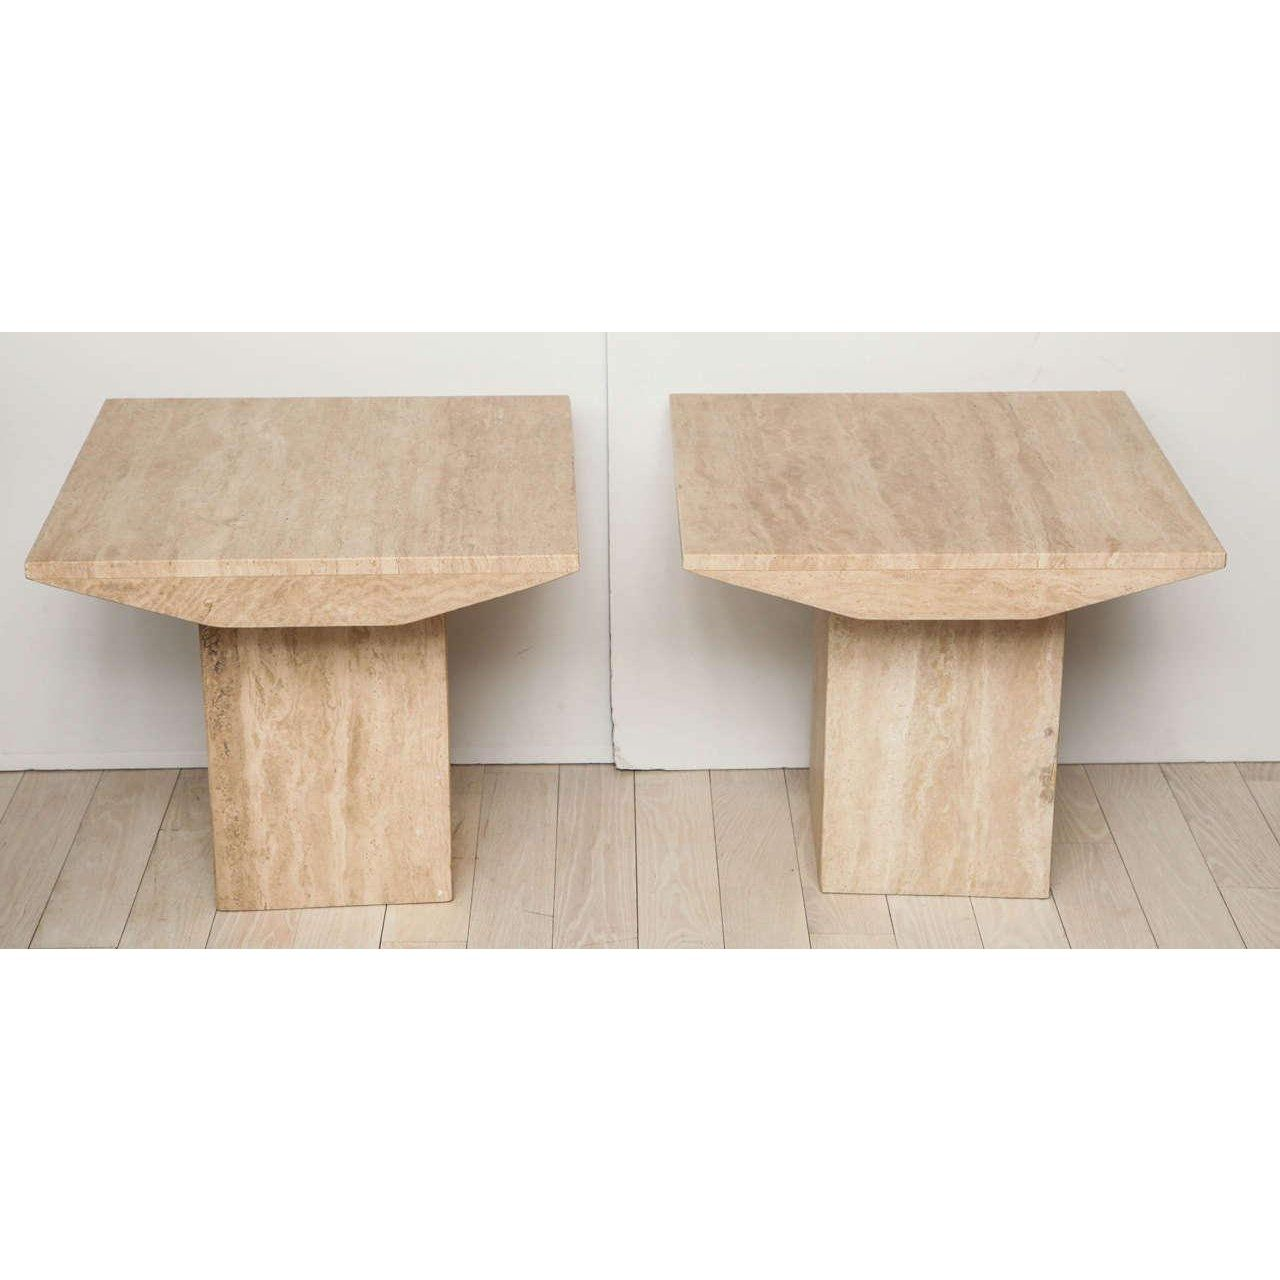 Pair Of 1970 S Square Travertine Side Tables Size 23 5 W 23 5